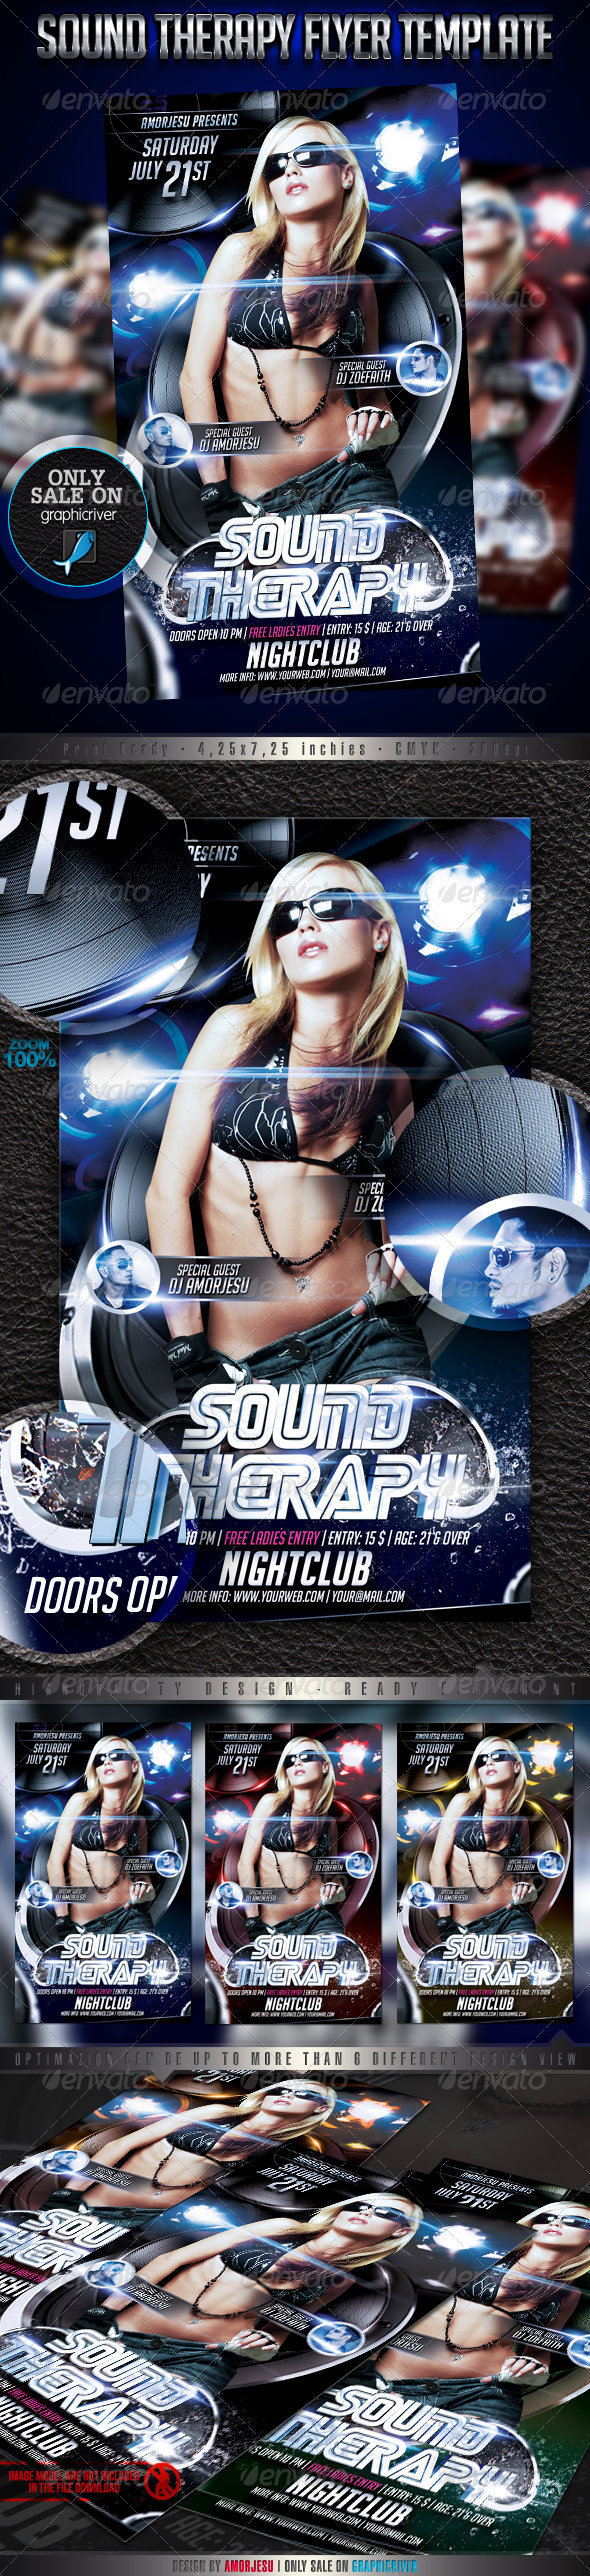 Sound Therapy Flyer Template - Events Flyers